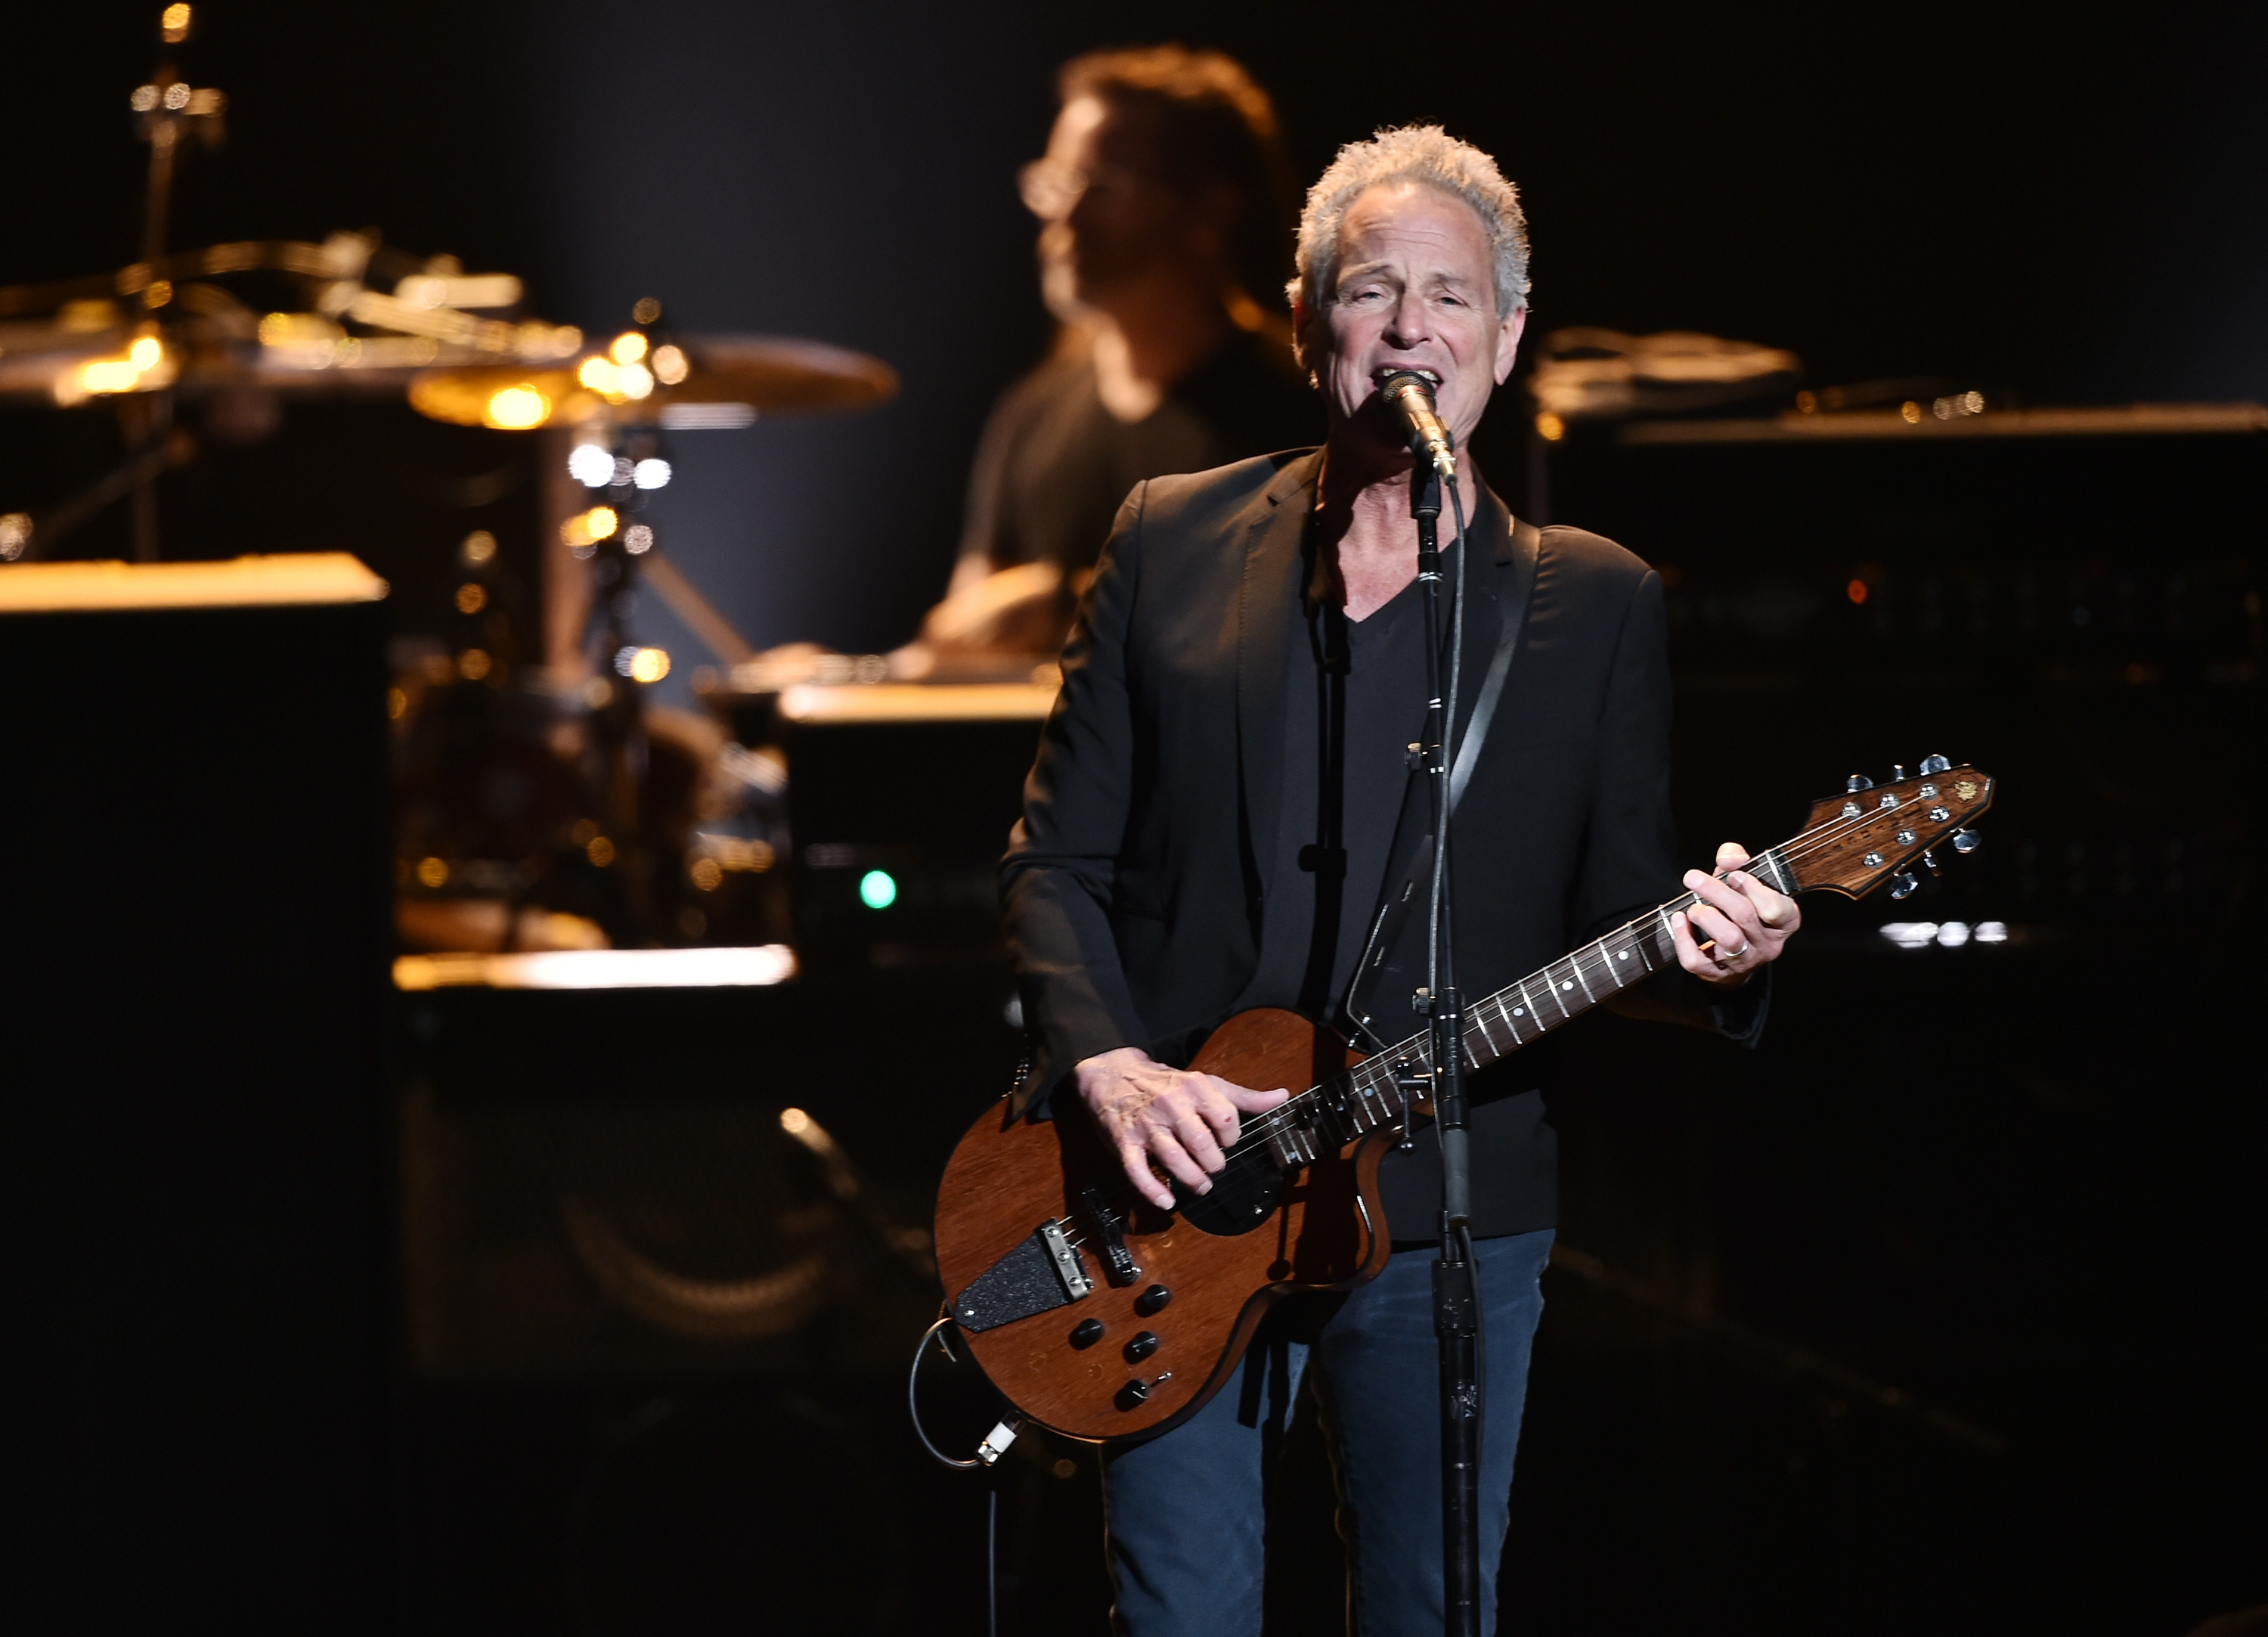 Lindsey Buckingham of Fleetwood Mac performs during in New York City on Jan. 26, 2018.